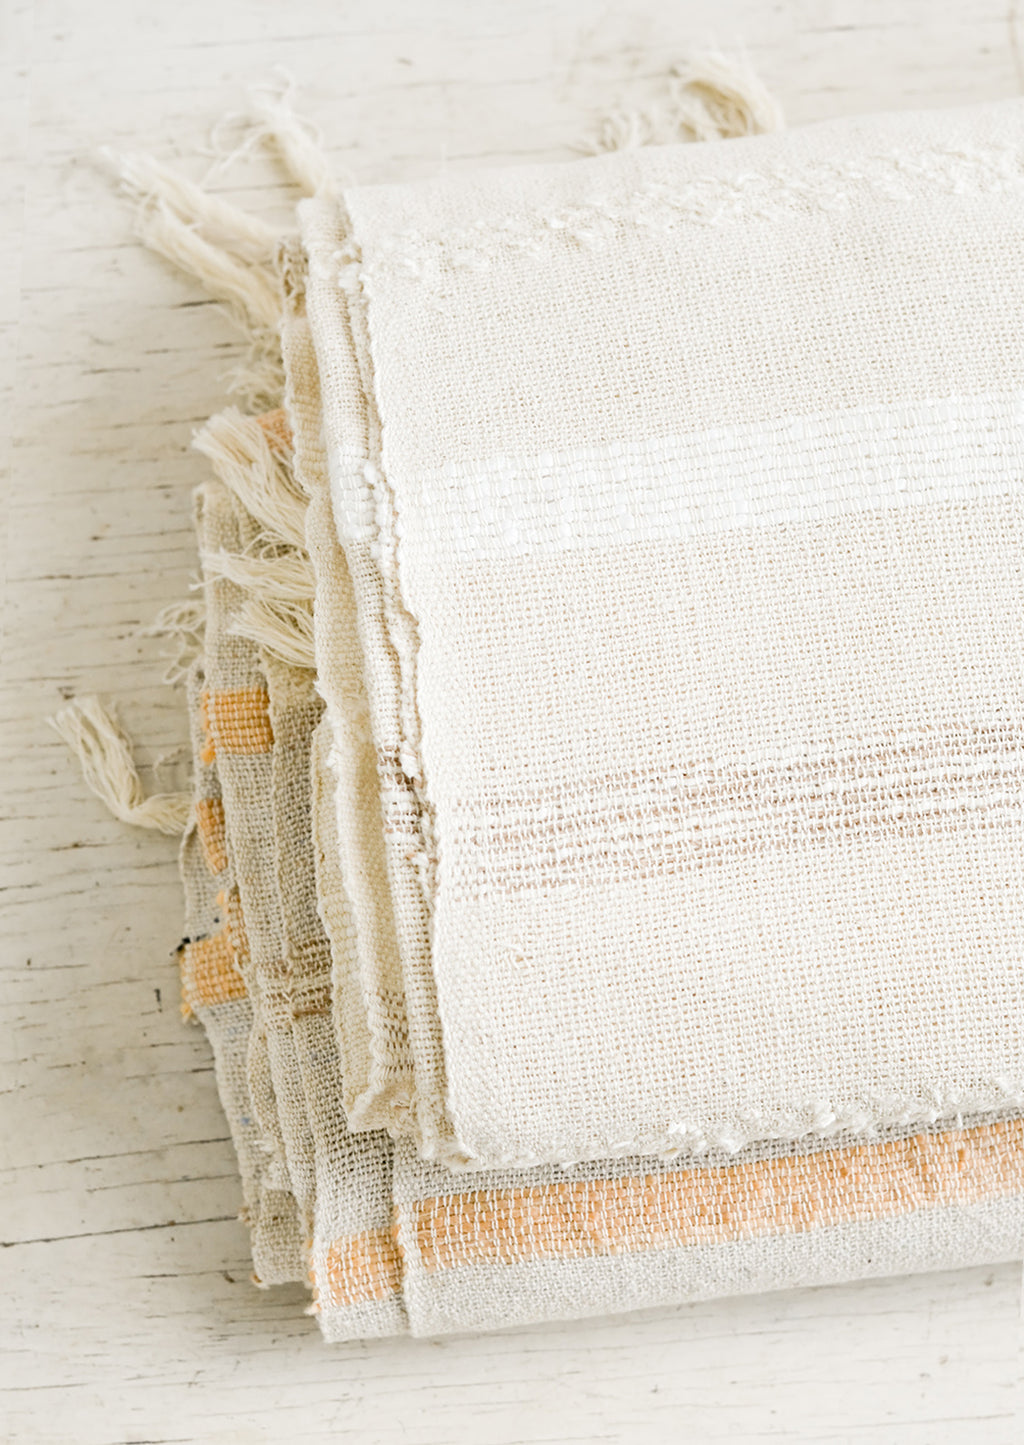 2: Folded gauze cotton blankets on a table.